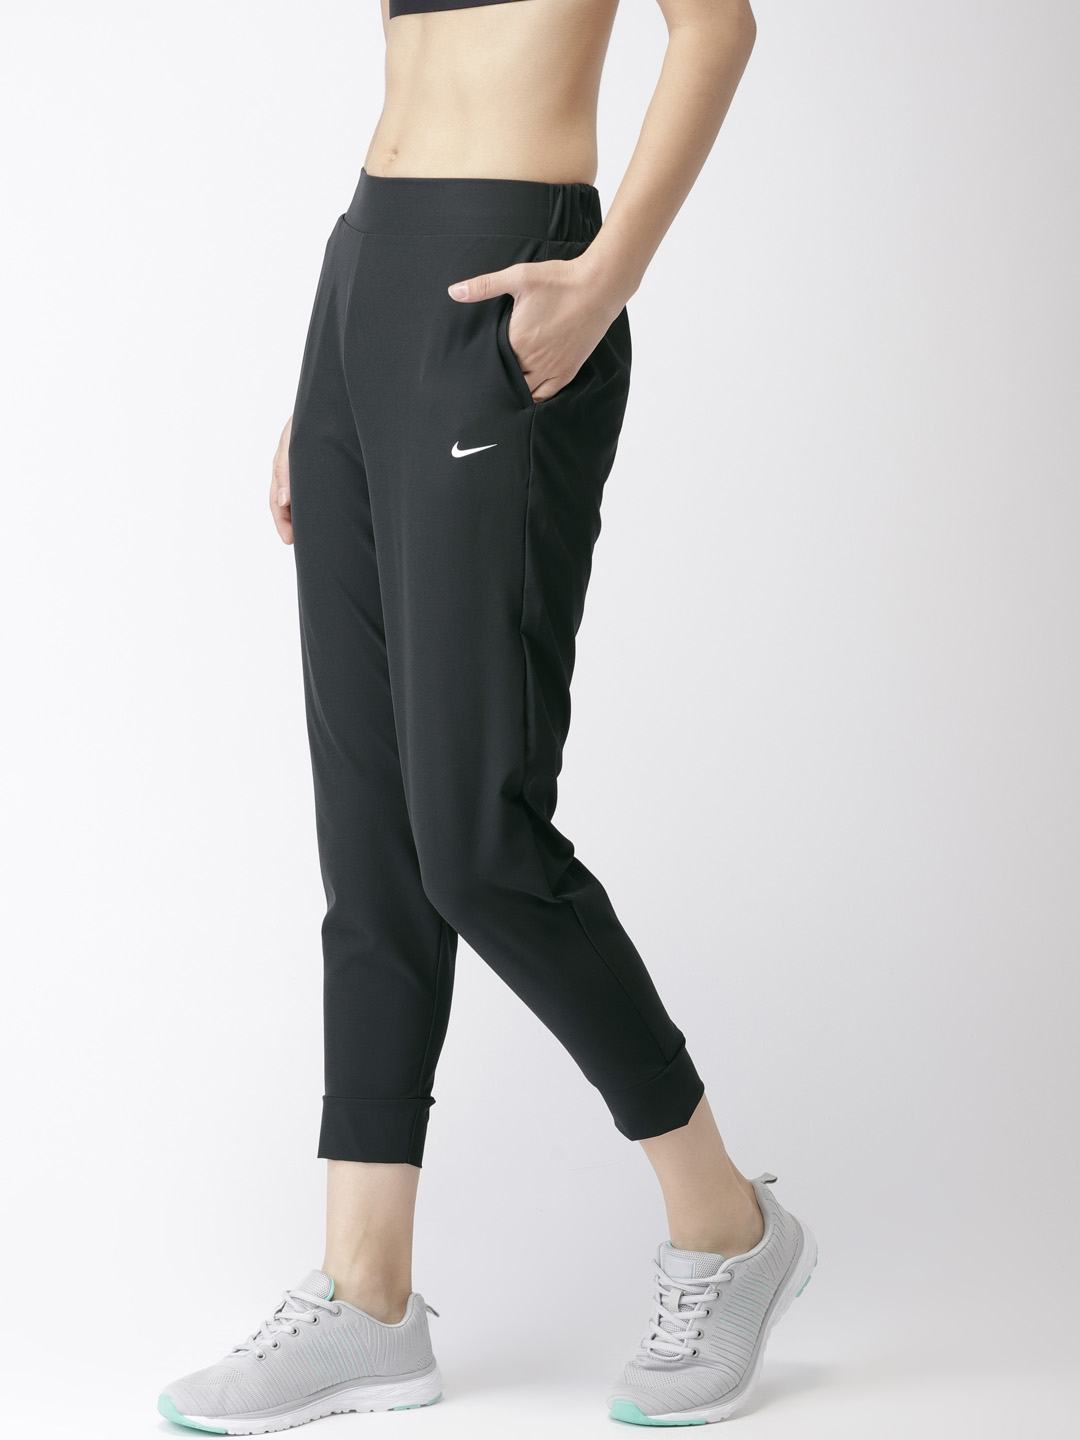 c38a3a71a654ea Nike Women Black Slim Fit Solid BLISS VCTRY DRI-FIT Cropped Joggers